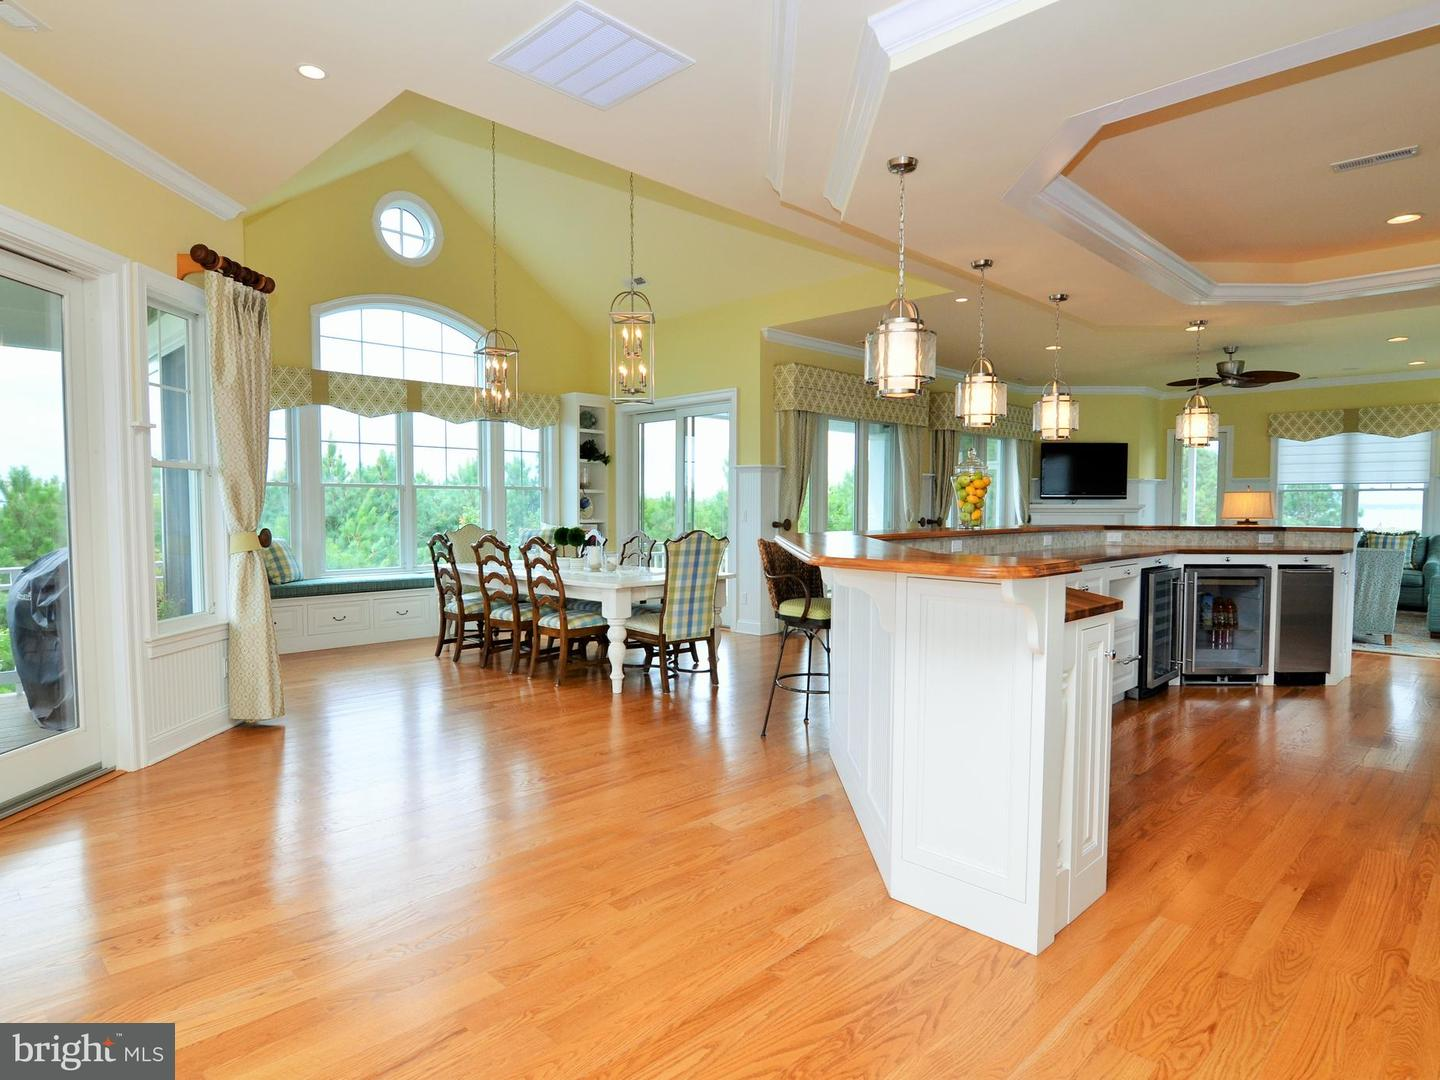 1002293530-300500807666-2018-09-25-15-08-25 31 Hall Ave | Rehoboth Beach, De Real Estate For Sale | MLS# 1002293530  - Suzanne Macnab